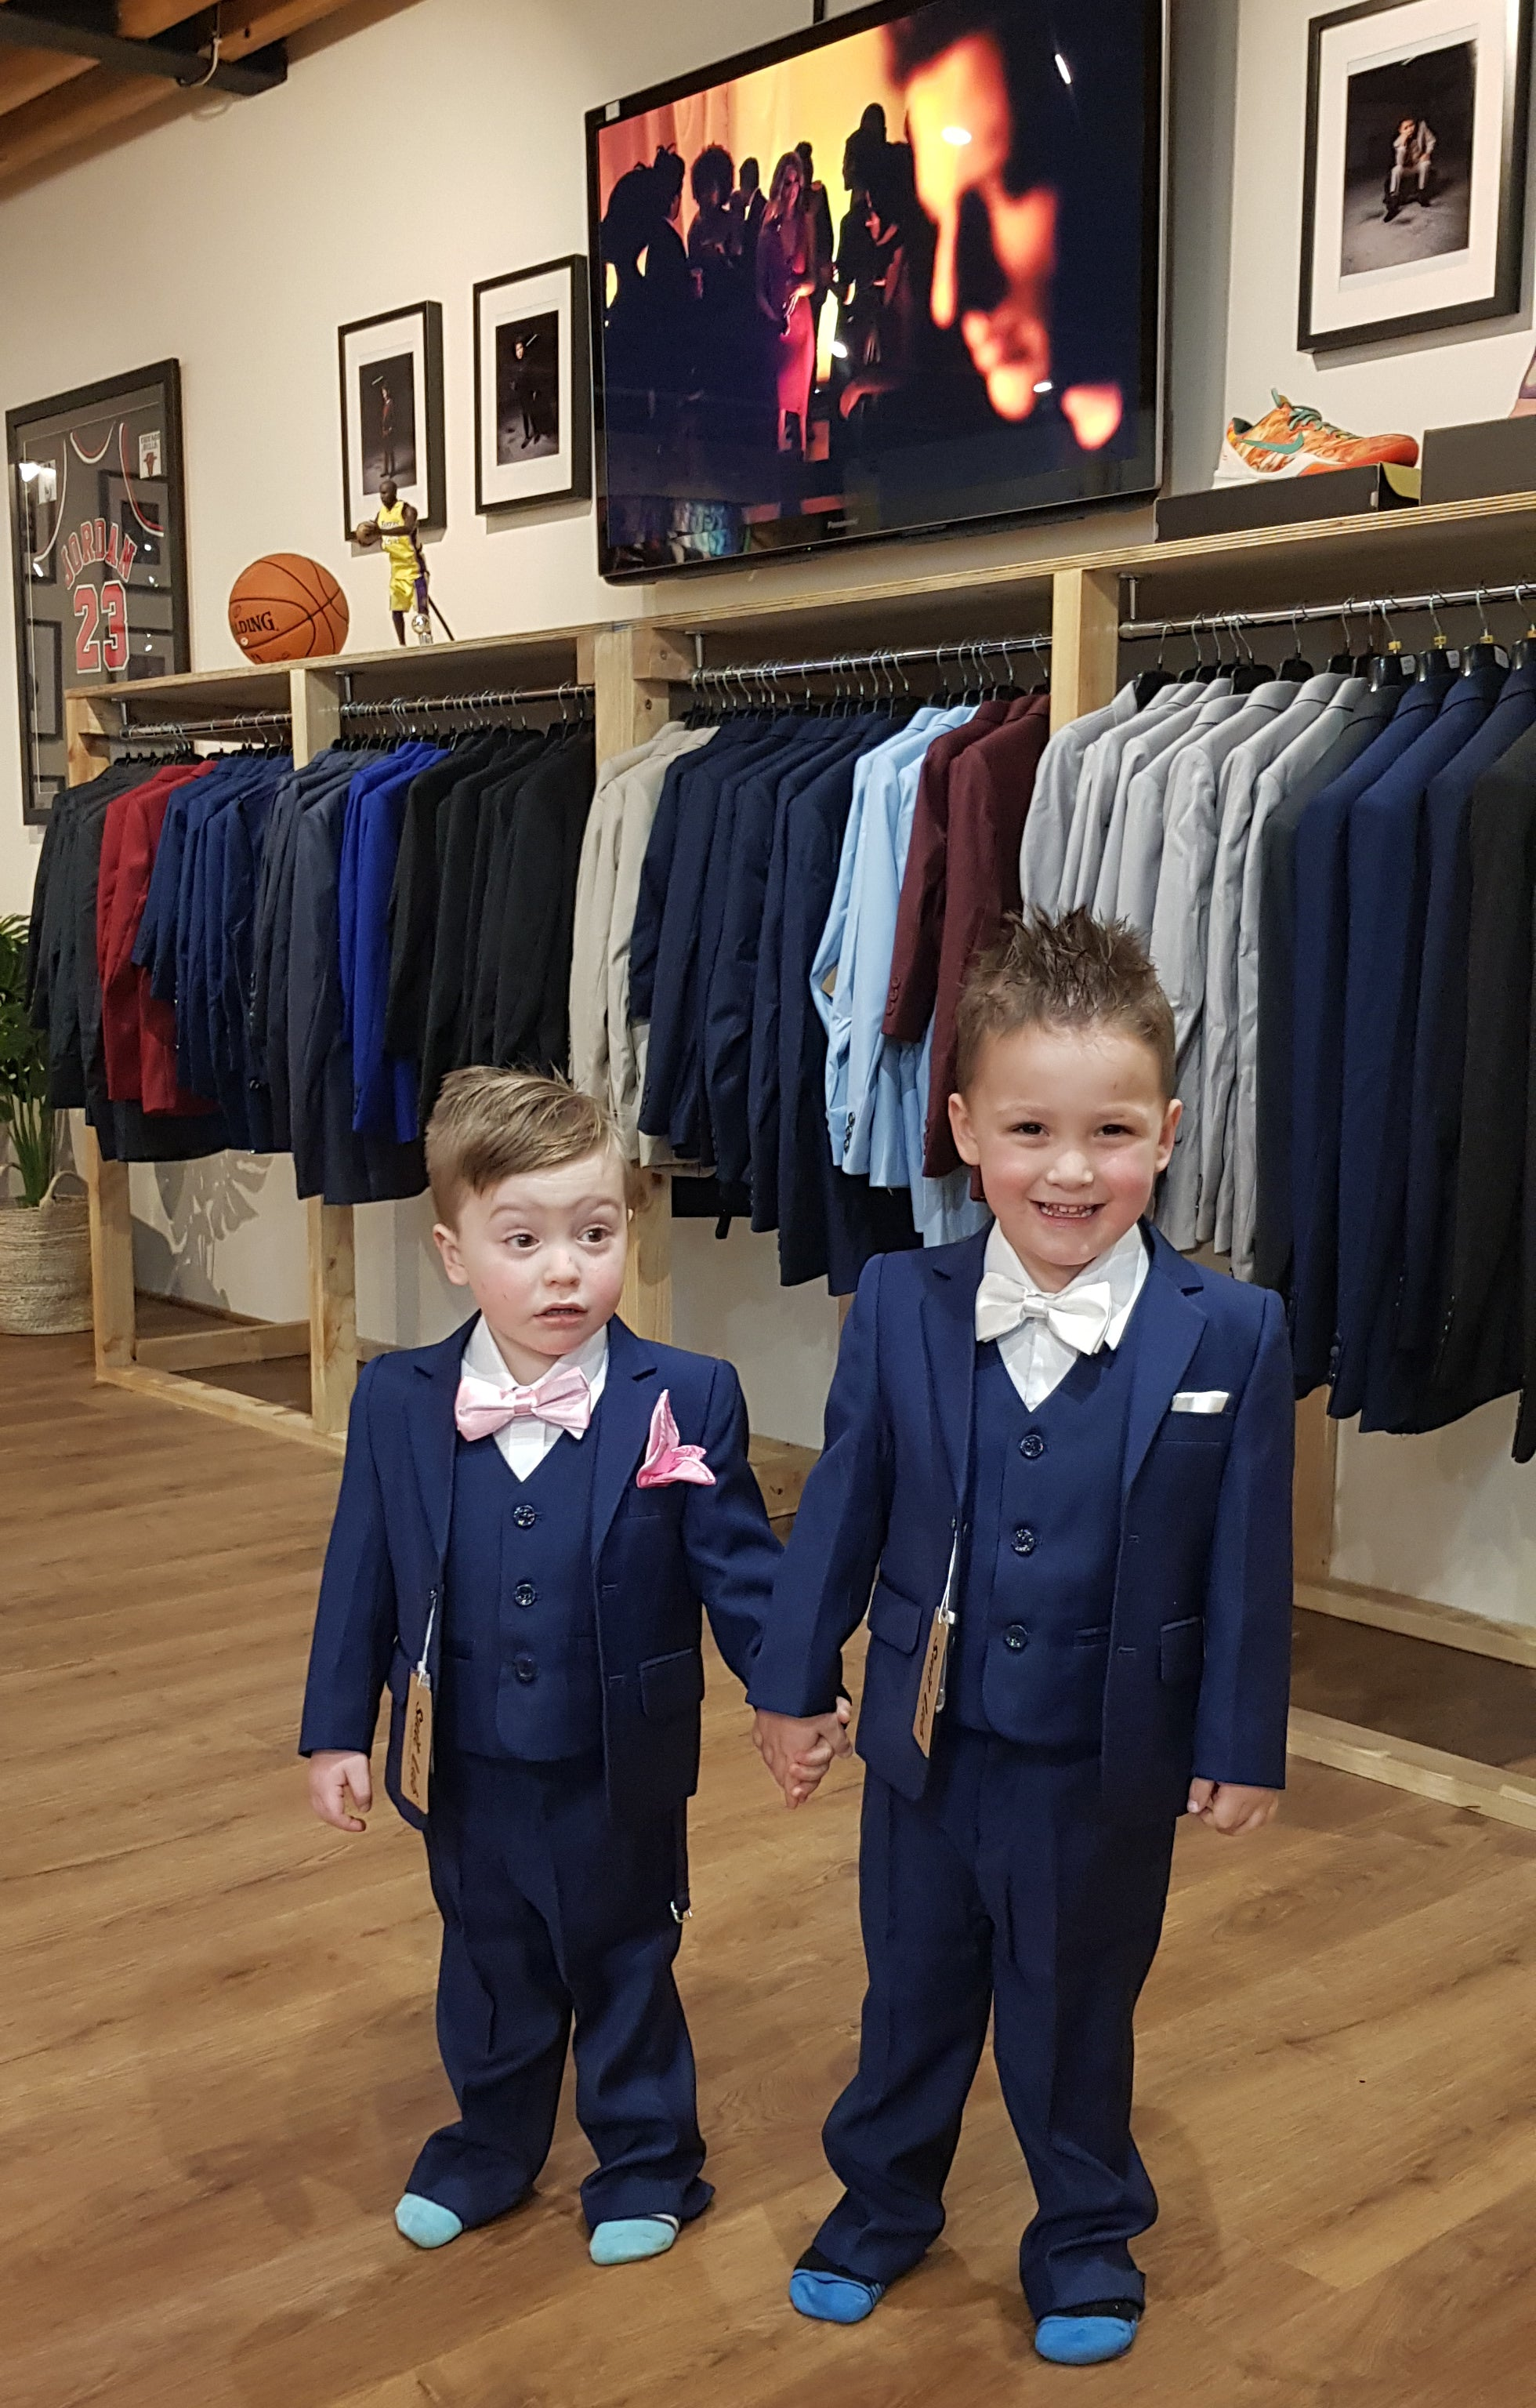 two brothers one with navy suits, one with pink bow tie and pocket square and the other one with white accessories